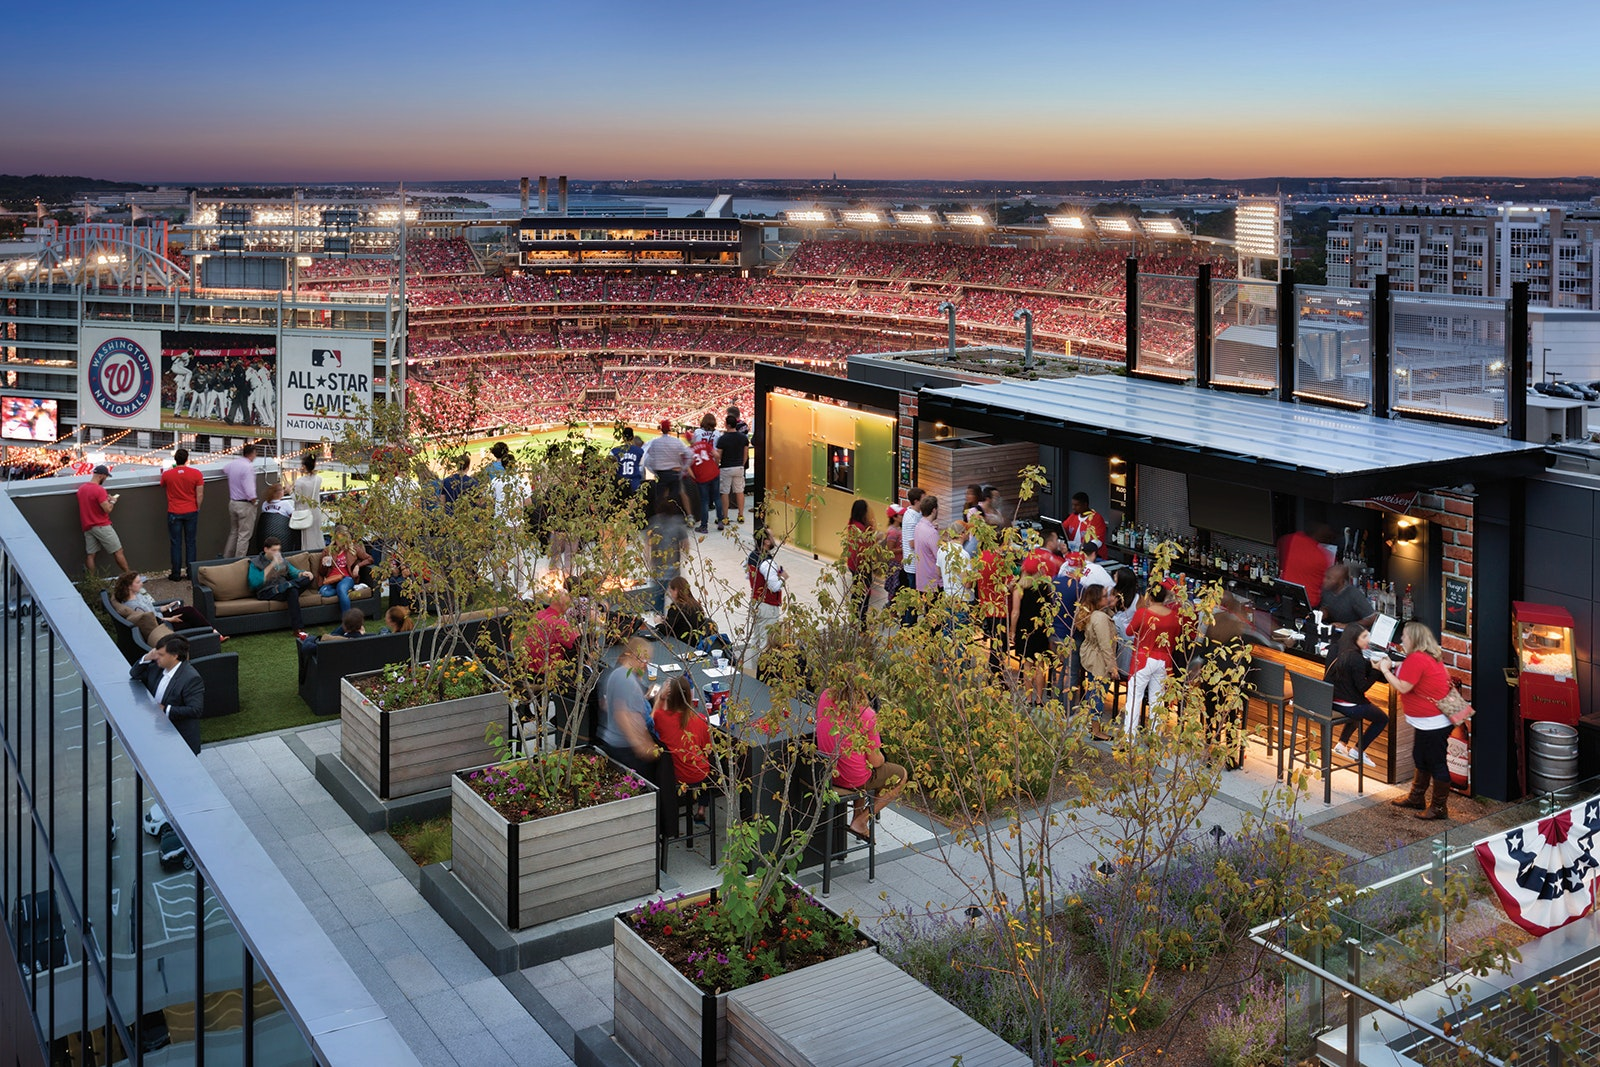 Watch a Nationals game at this baseball-centric roof bar.